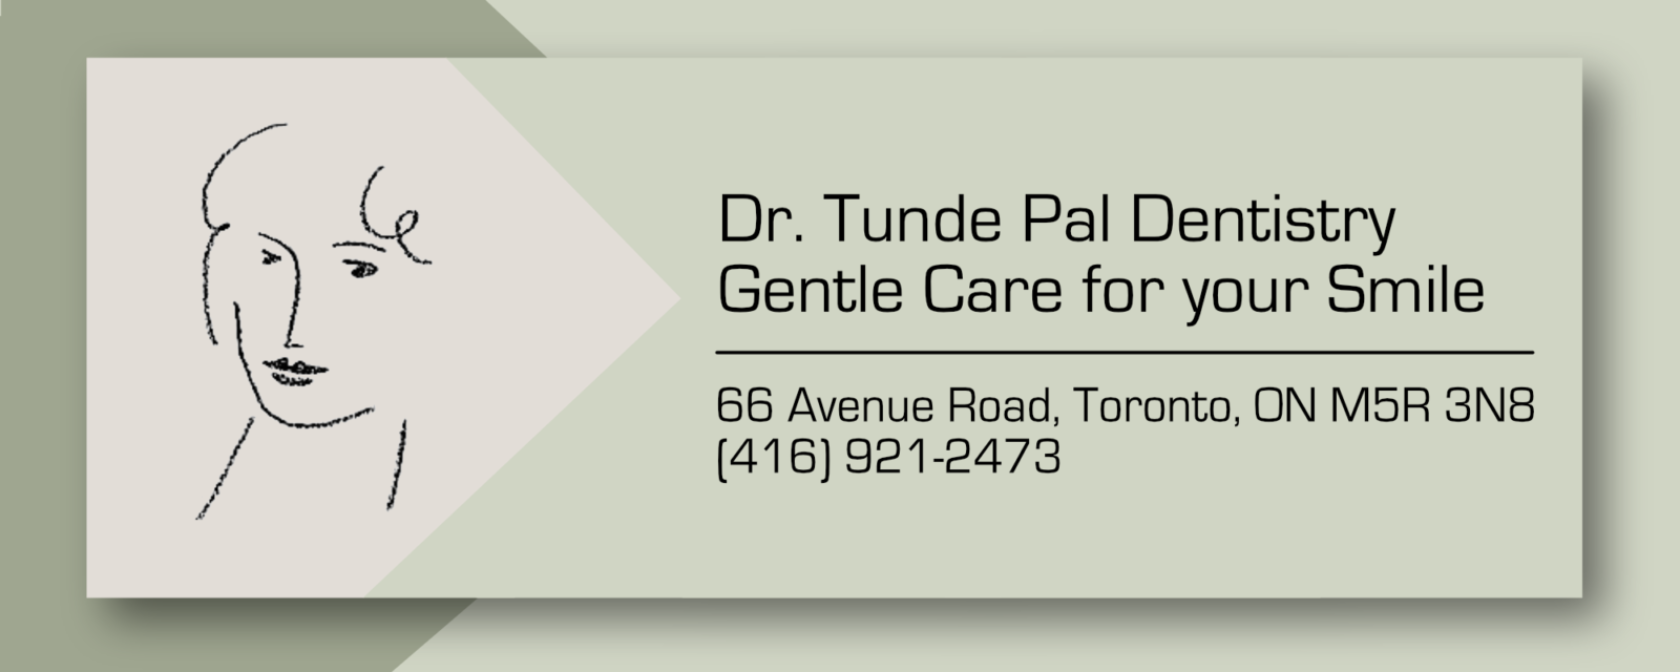 Gentle Care for Your Smile